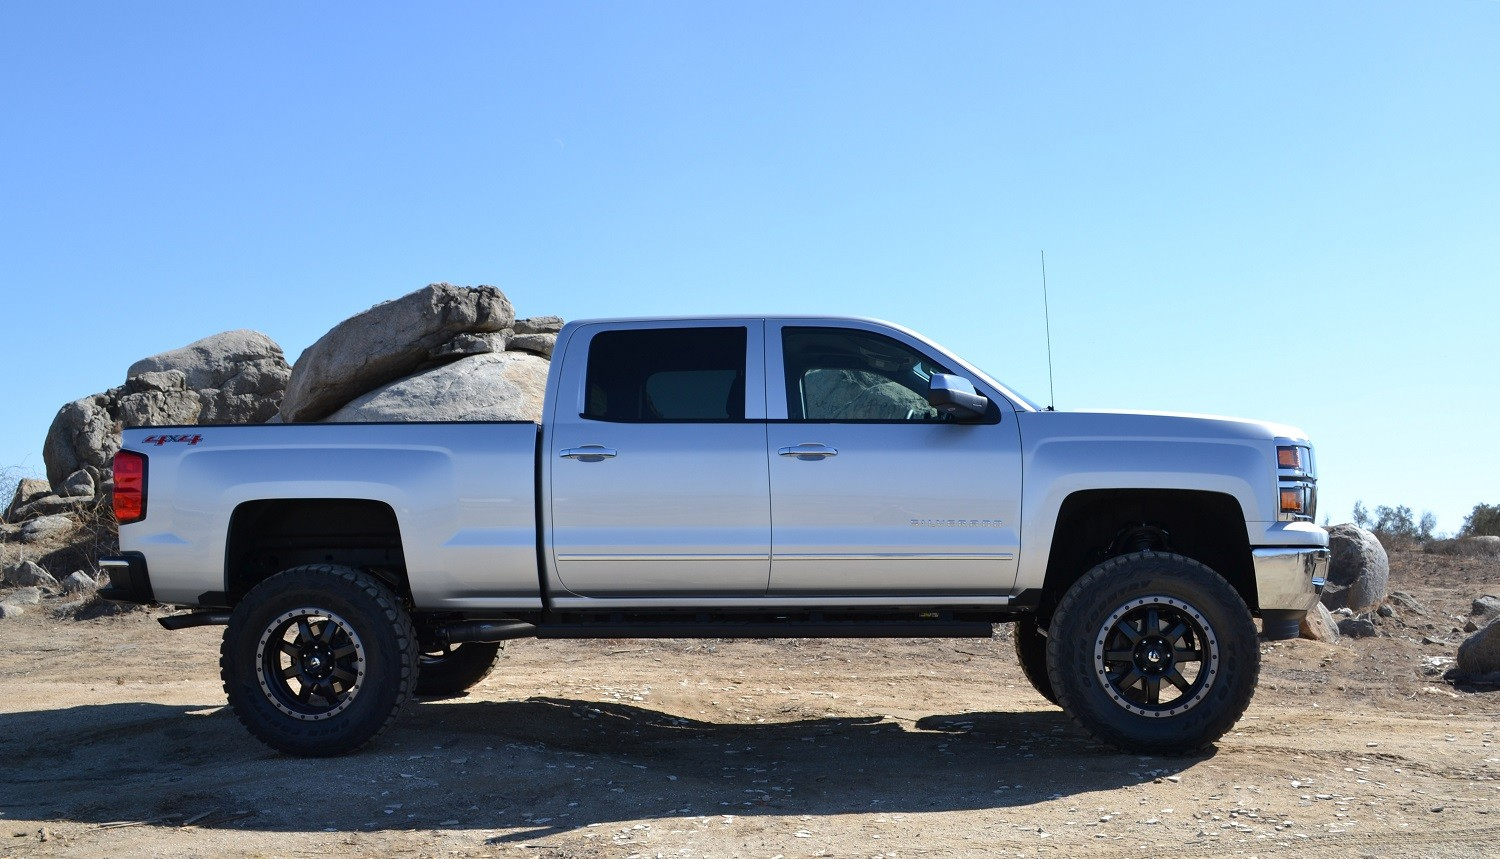 2014 Chevy Silverado Lifted >> 2014 2018 Chevy Silverado 1500 4wd W Steel Oem Suspension Complete Lift Kit By Cst 8 Lift